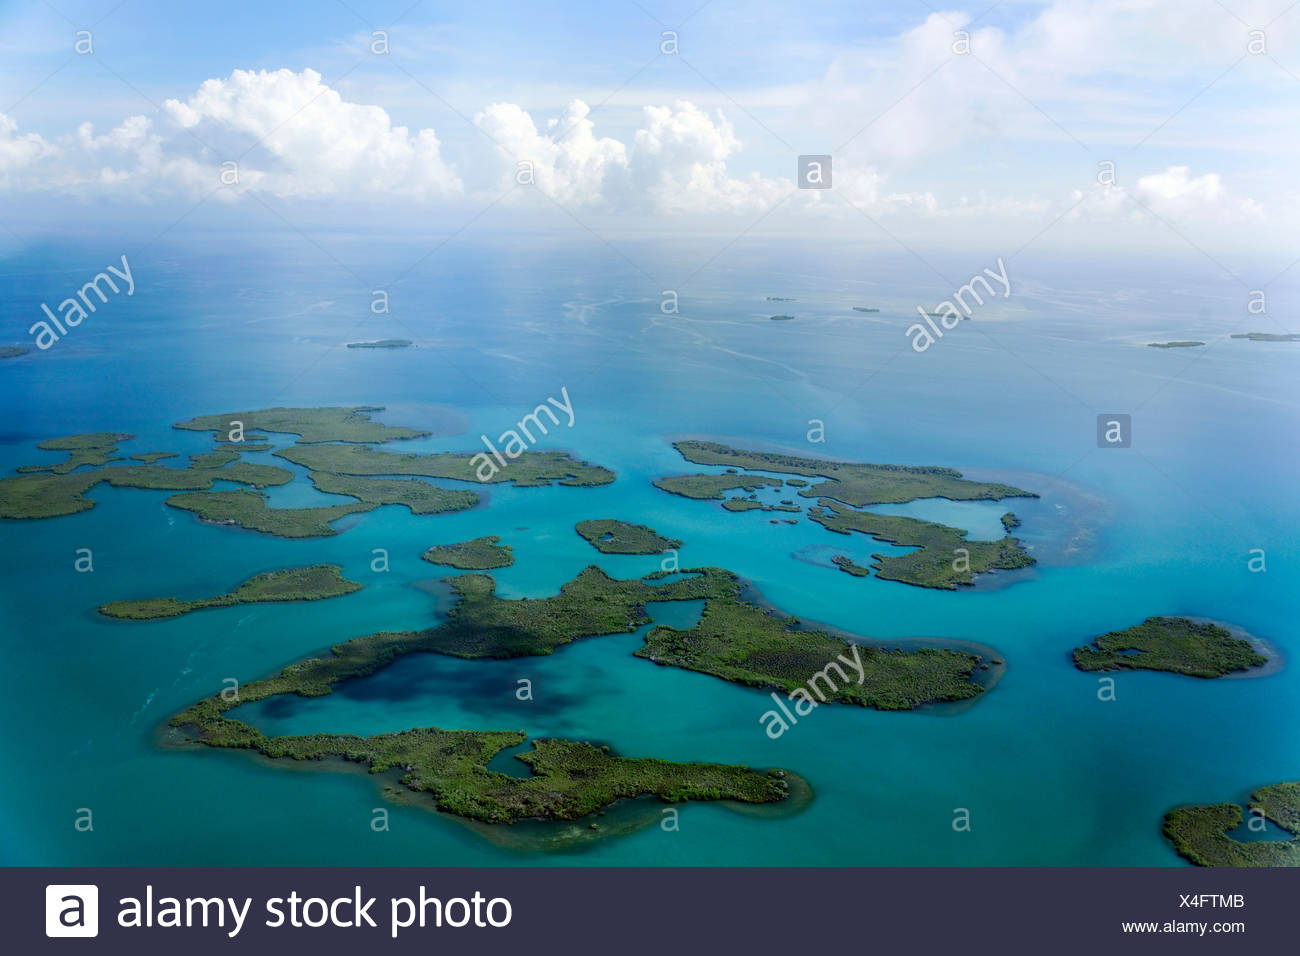 Mangroves in the ocean, aerial picture, coast between Dagria and Punta Gorda, Belize, Central America, Caribbean Stock Photo